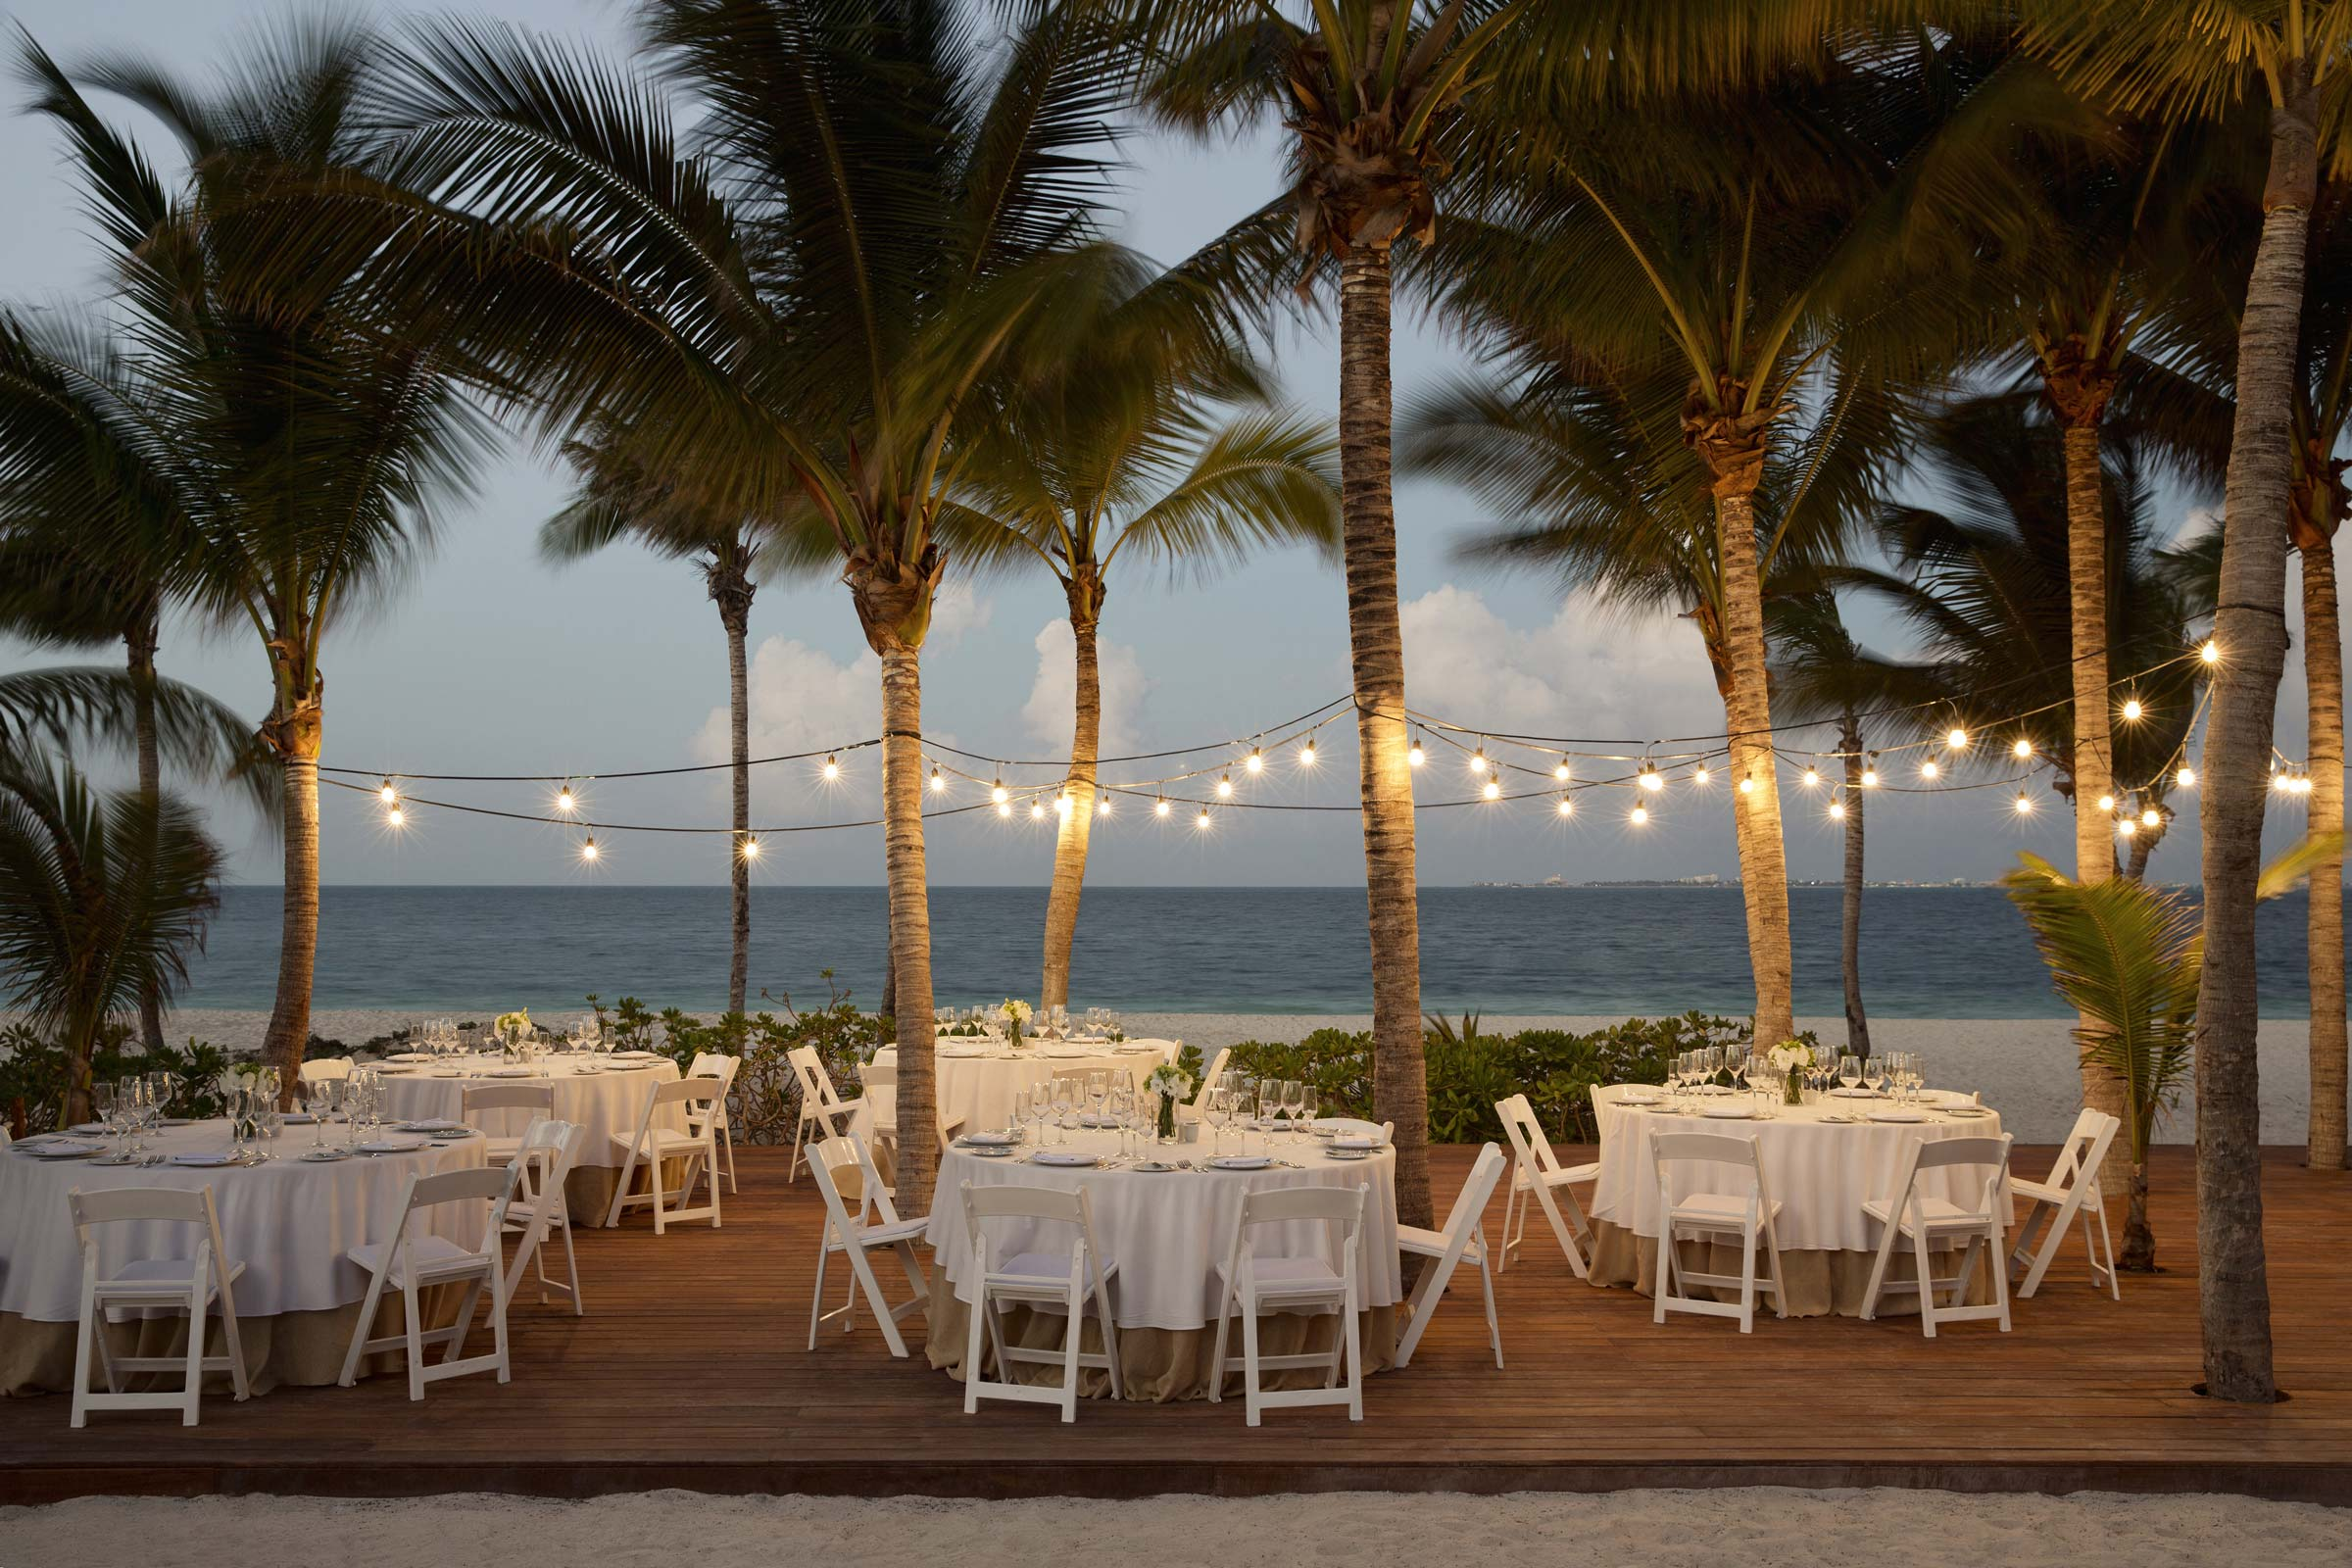 Amazing beach wedding venues for happily ever after